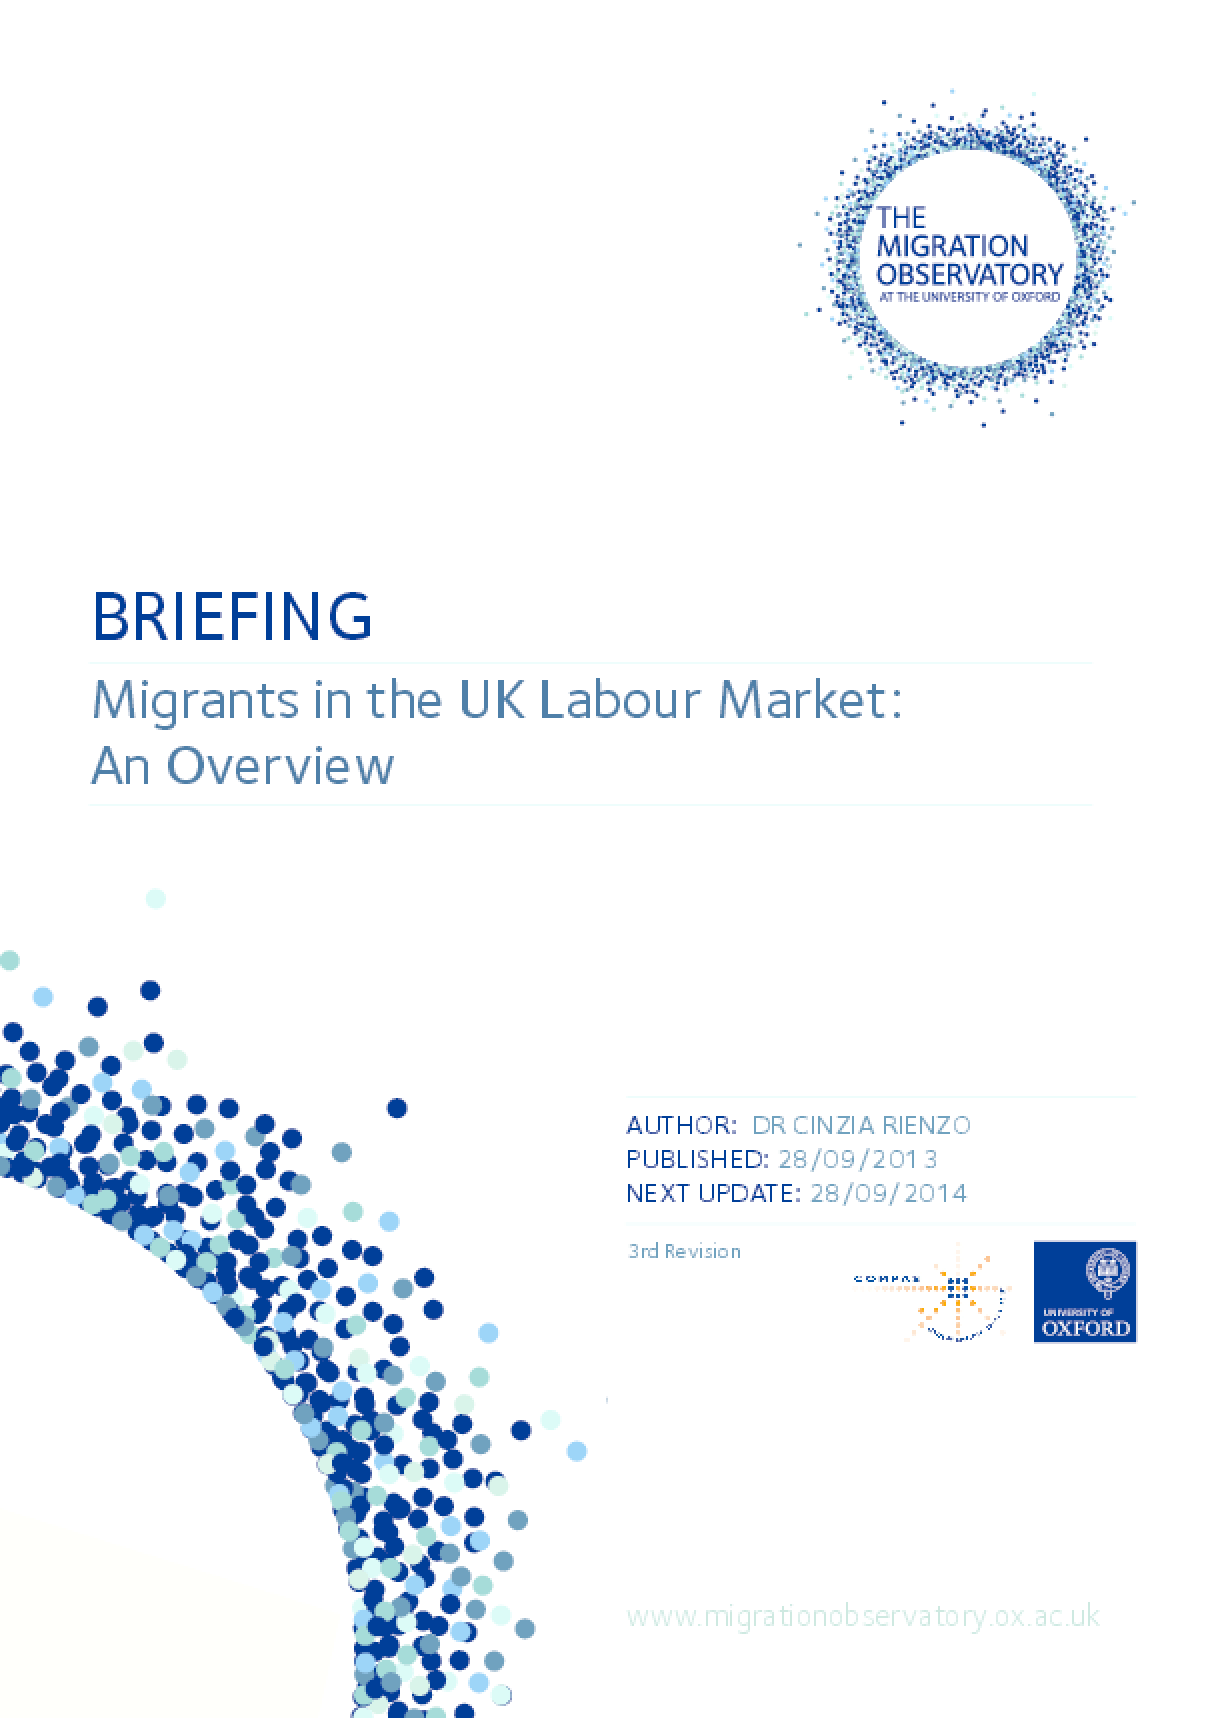 Migrants in the UK Labour Market: An Overview